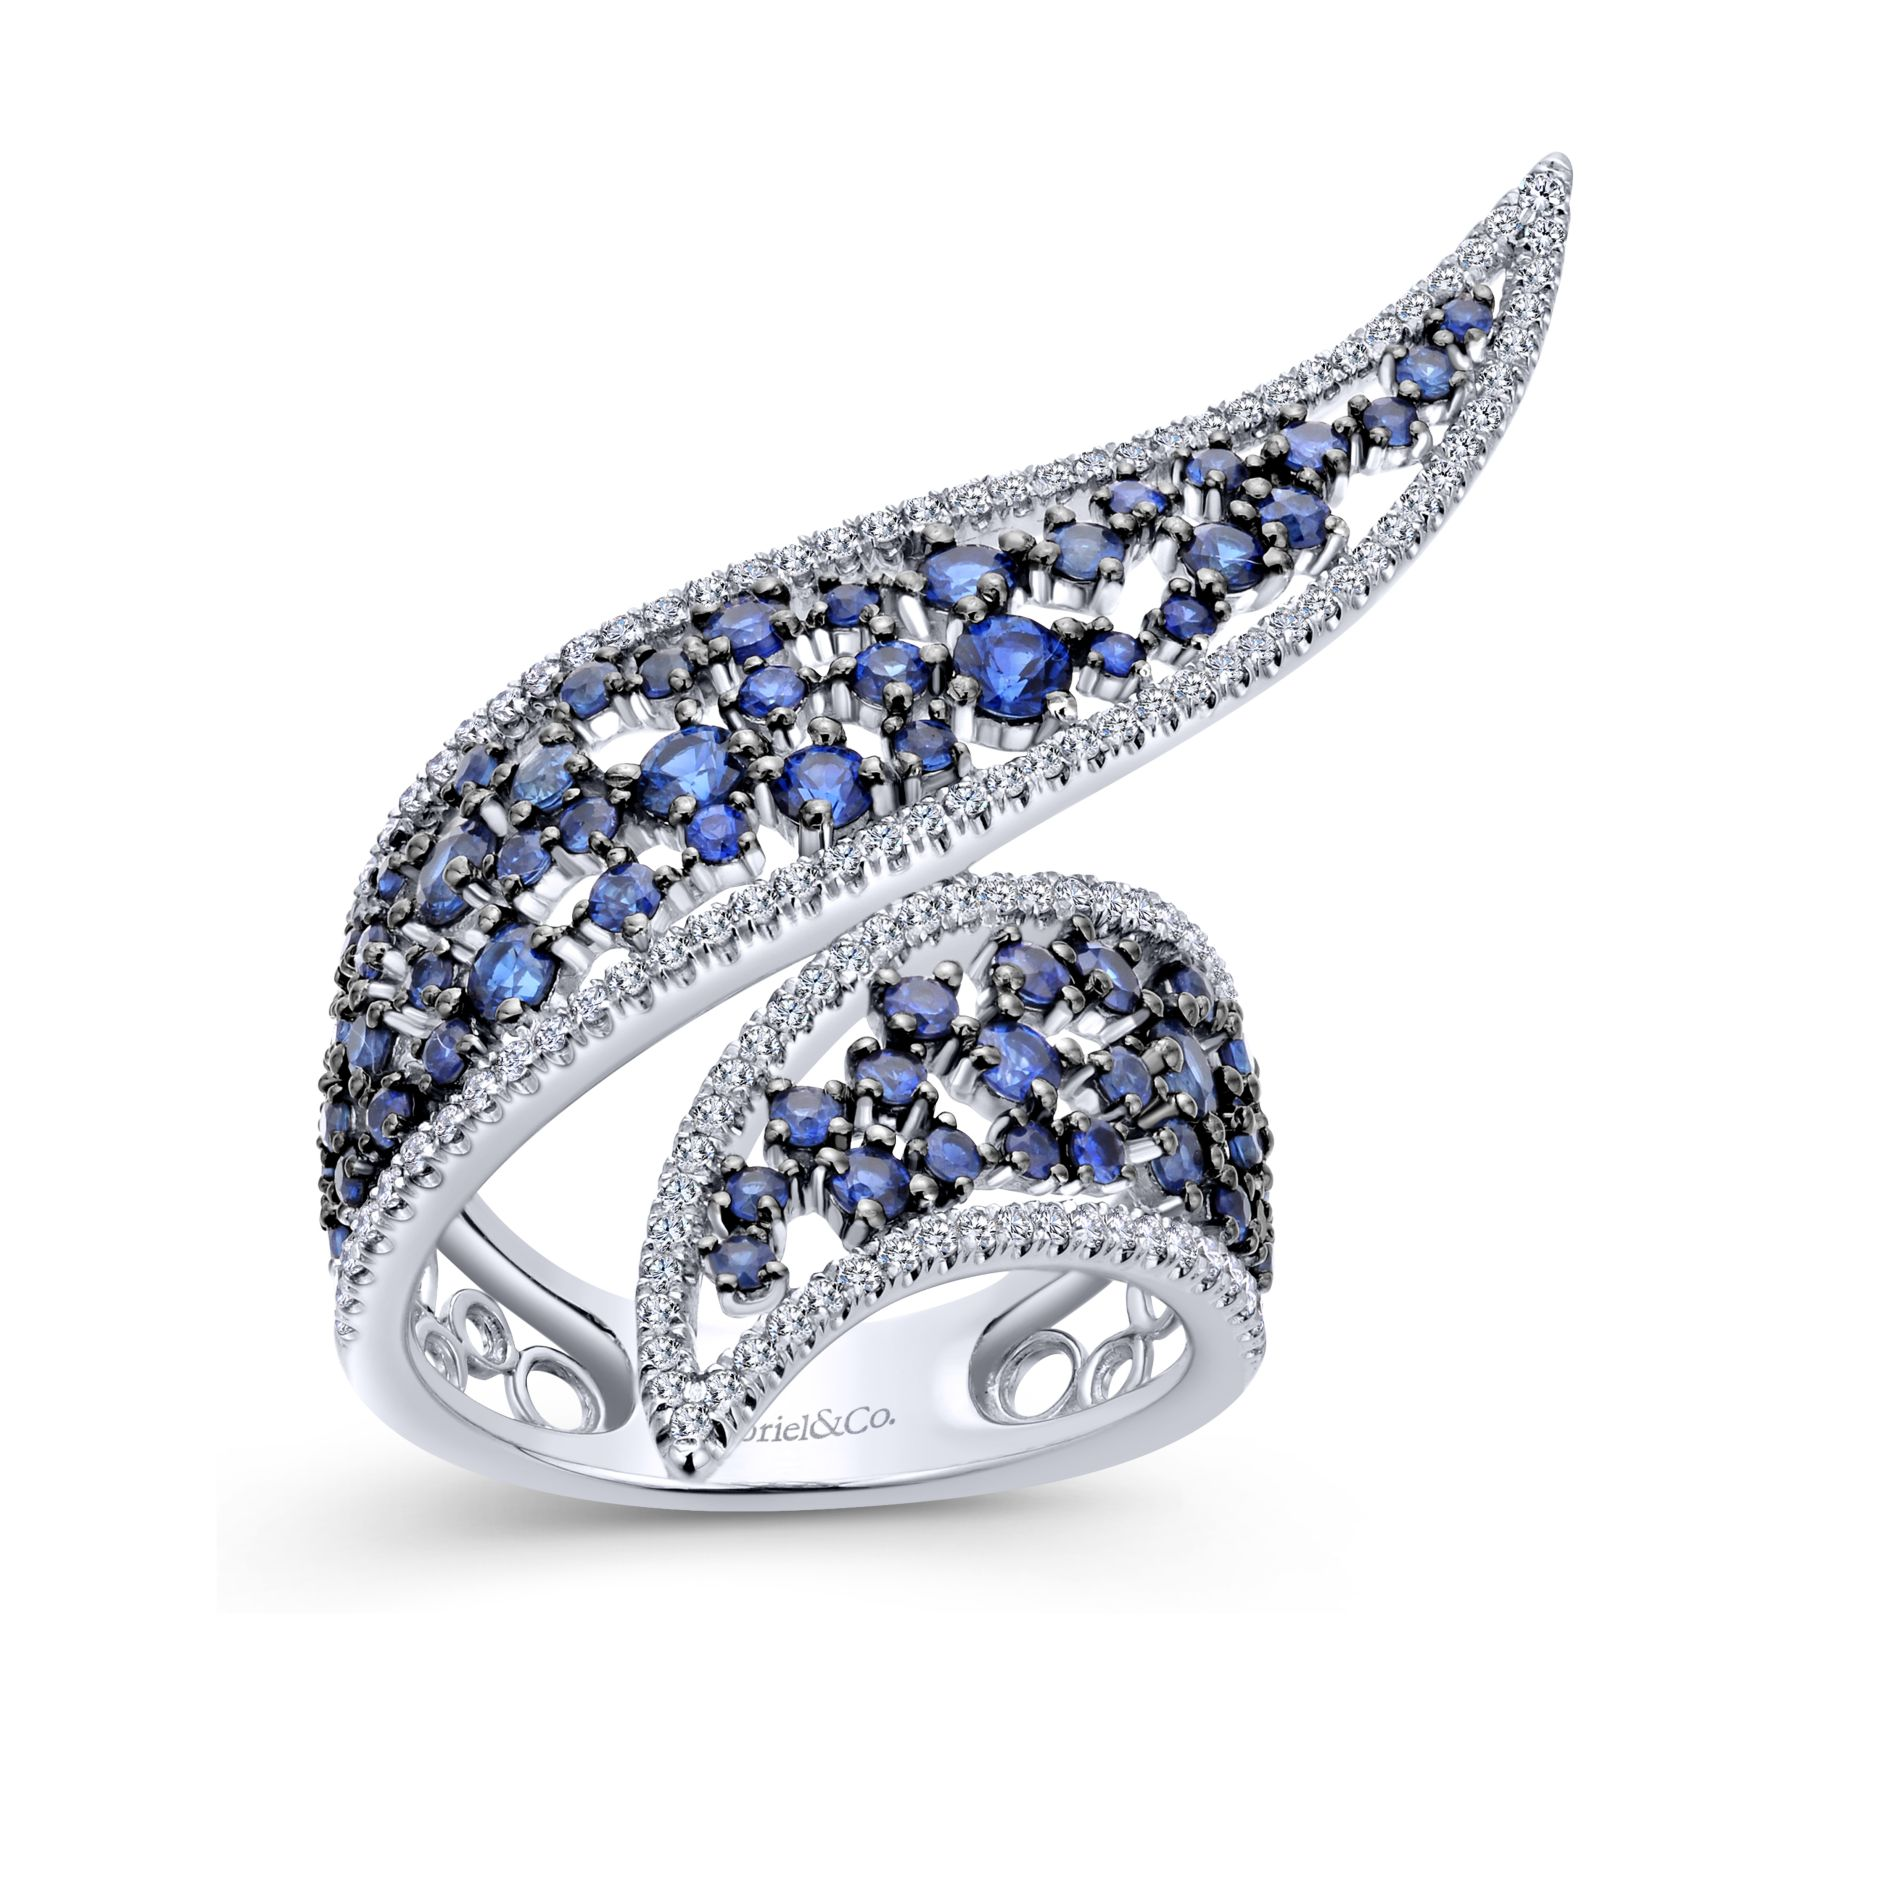 Rings - DIAMOND AND SAPPHIRE LADIES RING - image #4